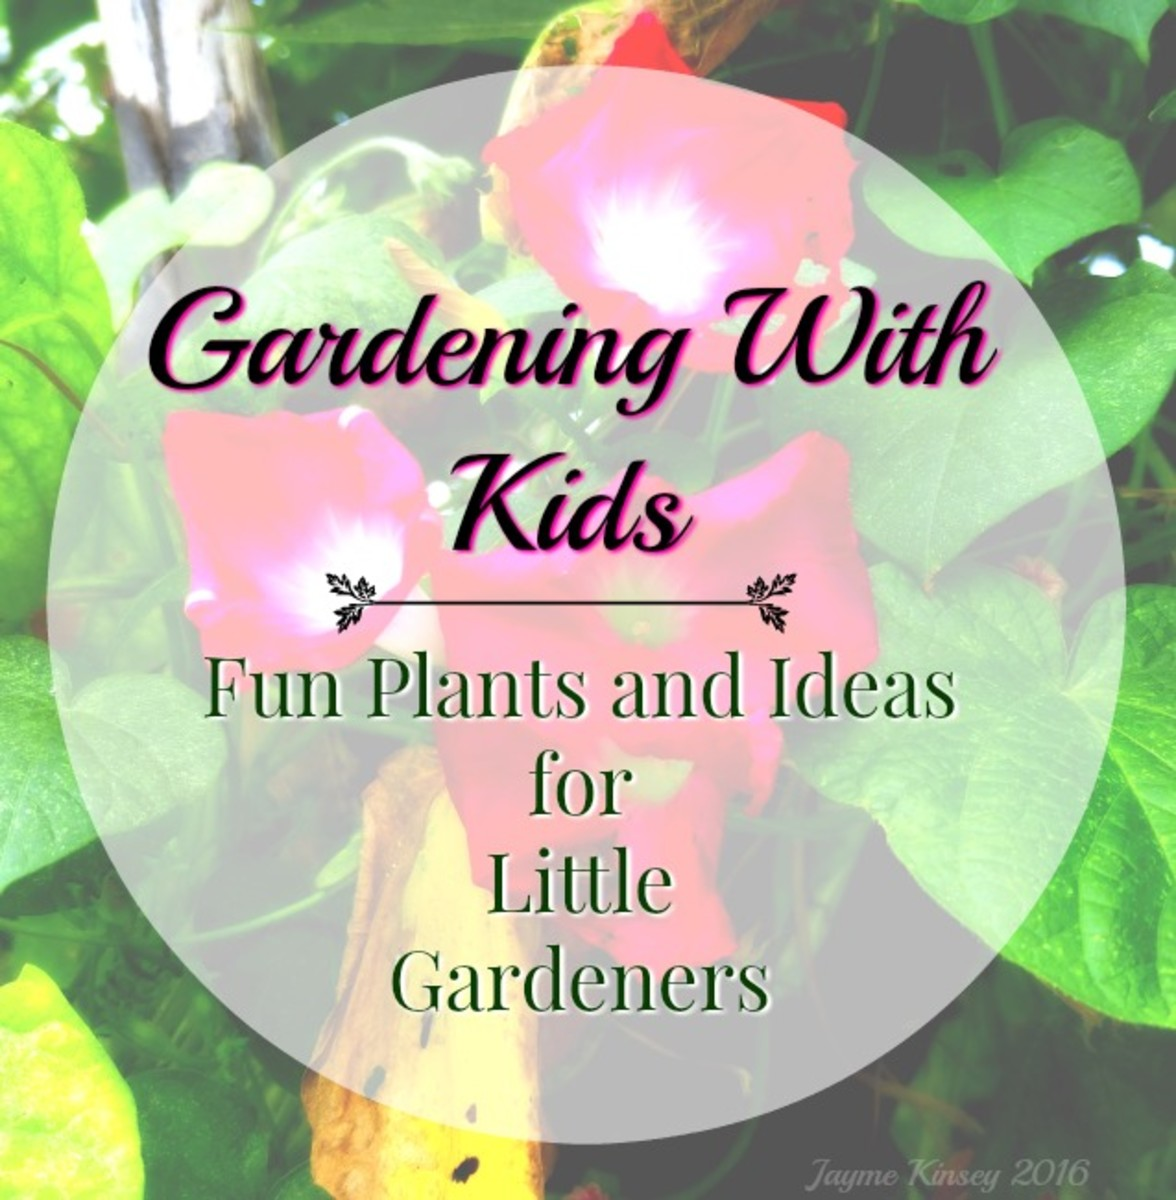 Gardening With Kids—Fun Plants and Ideas for Children